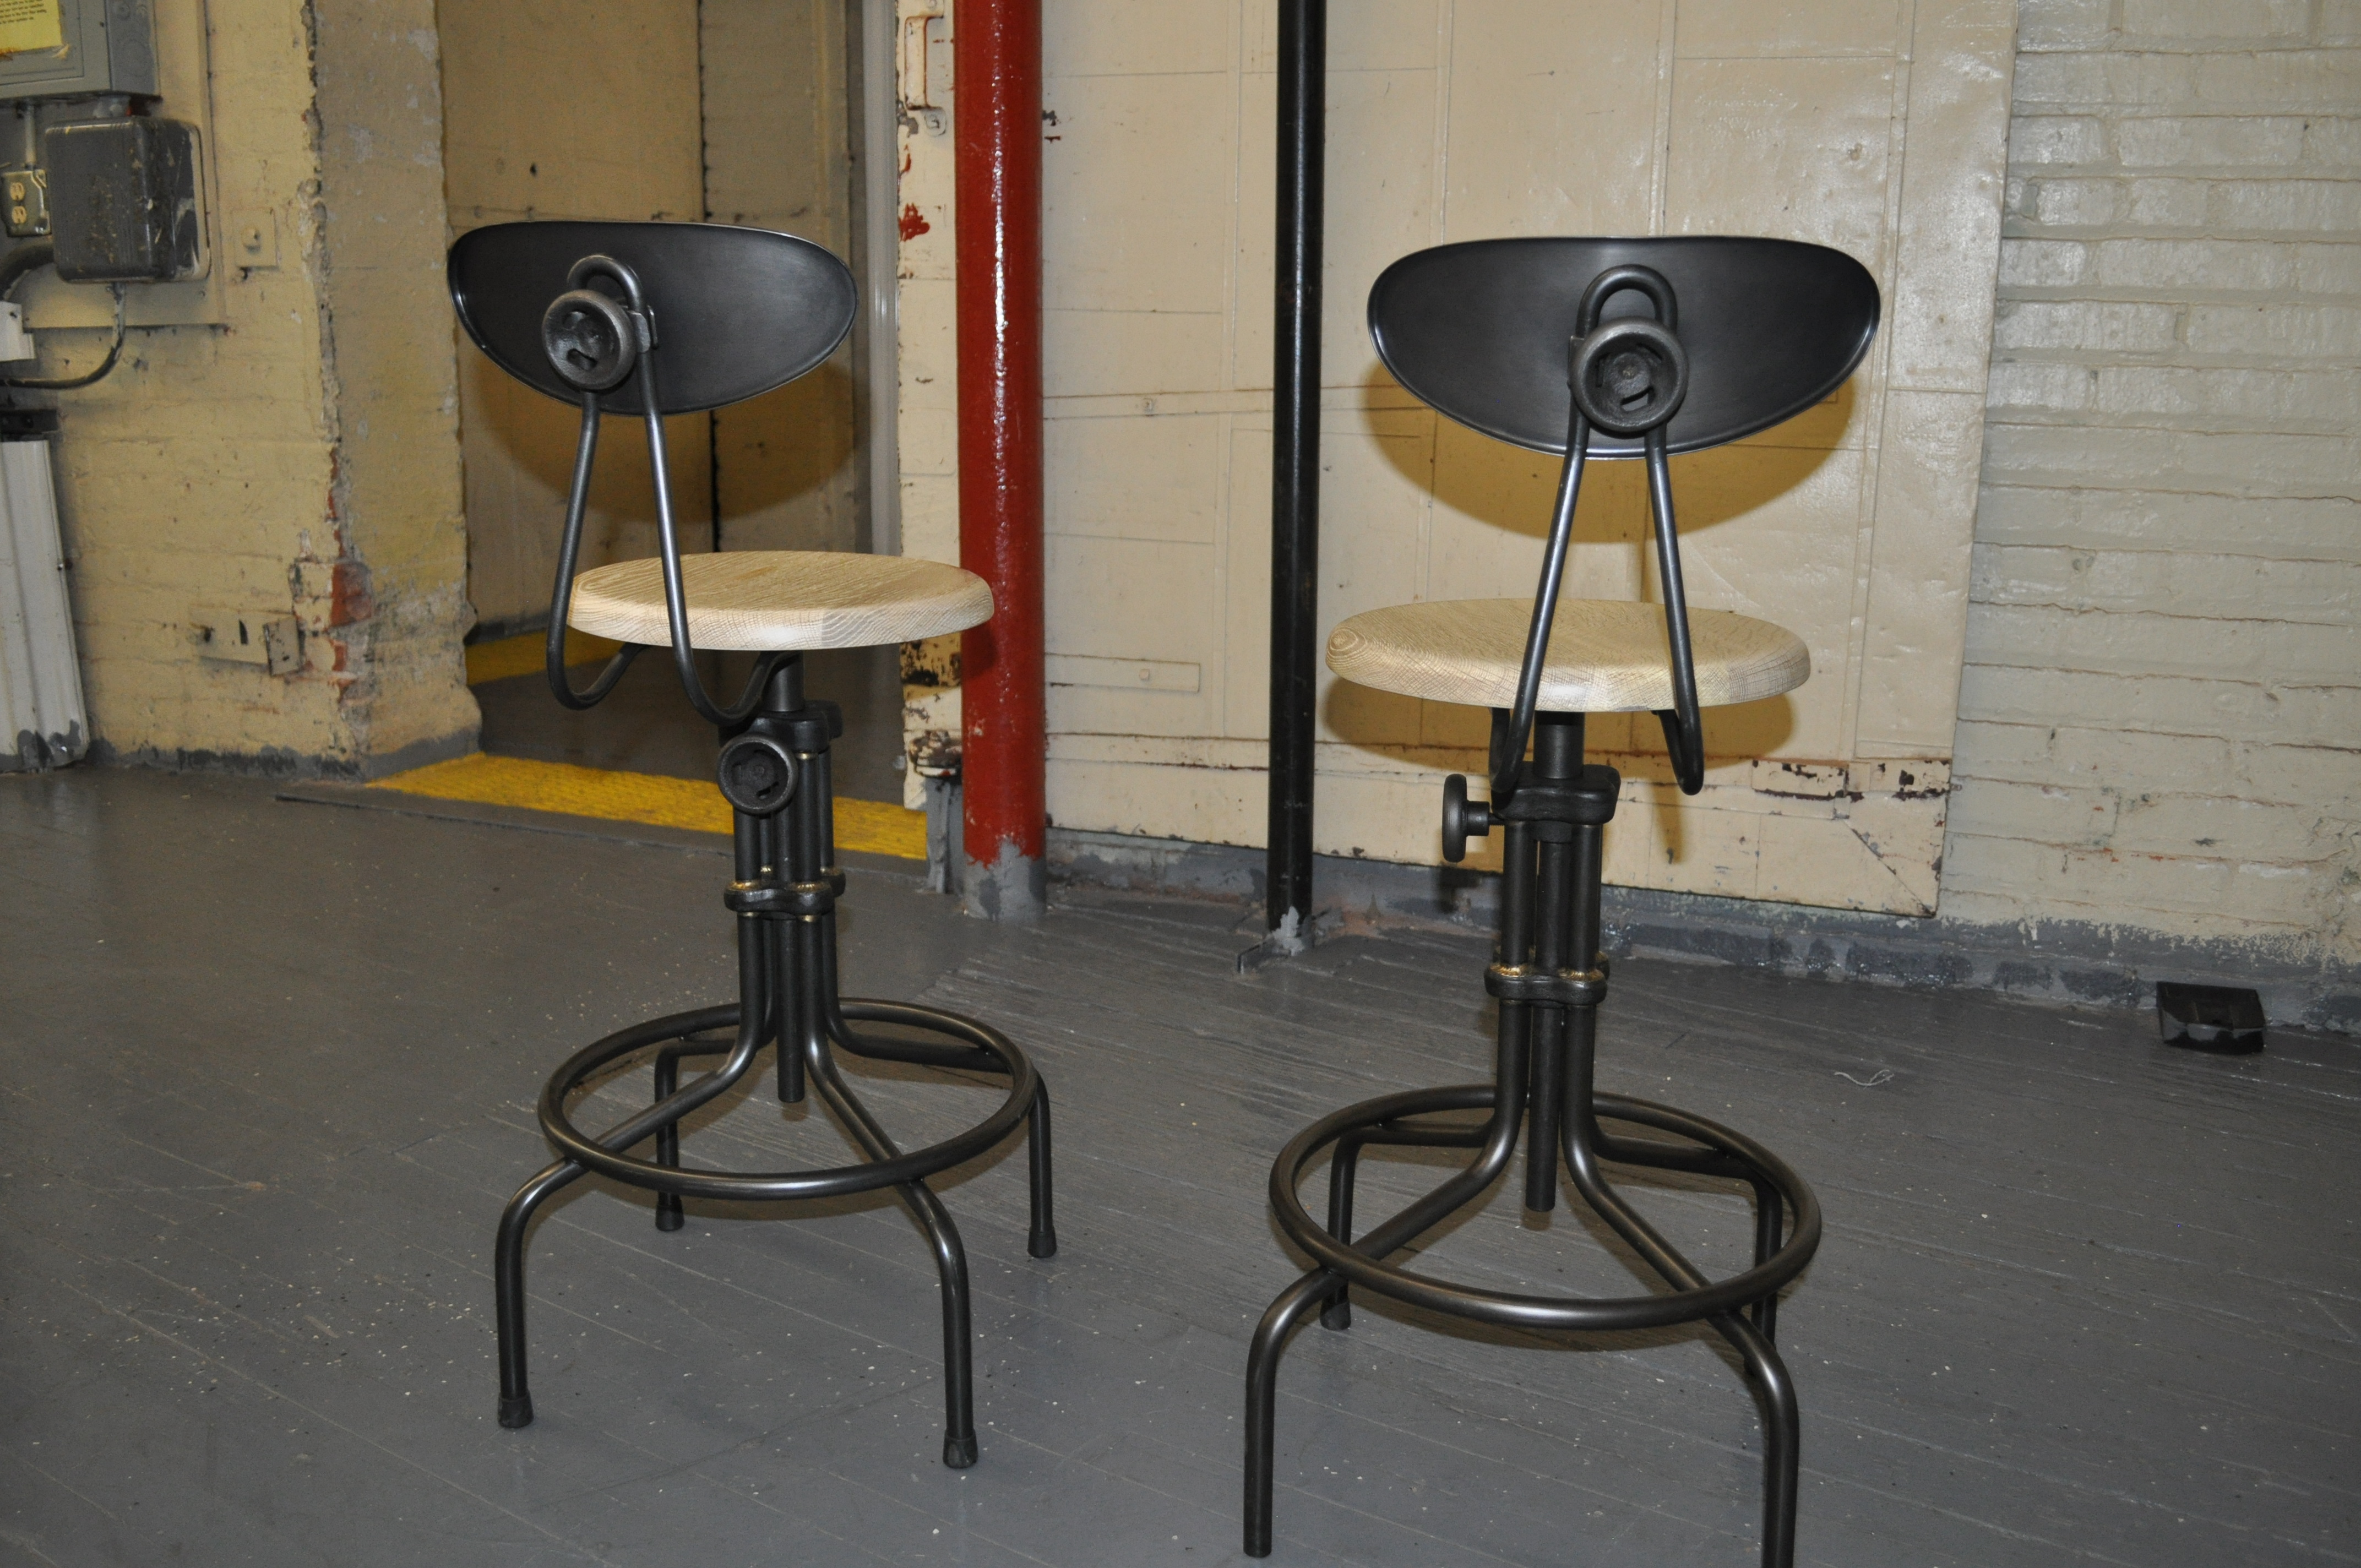 Industrial Style Adjustable Bar Stools Set of 2 Chairish : 9424729f c1df 413f ad9b 35be616a7eaaaspectfitampwidth640ampheight640 from www.chairish.com size 640 x 640 jpeg 42kB